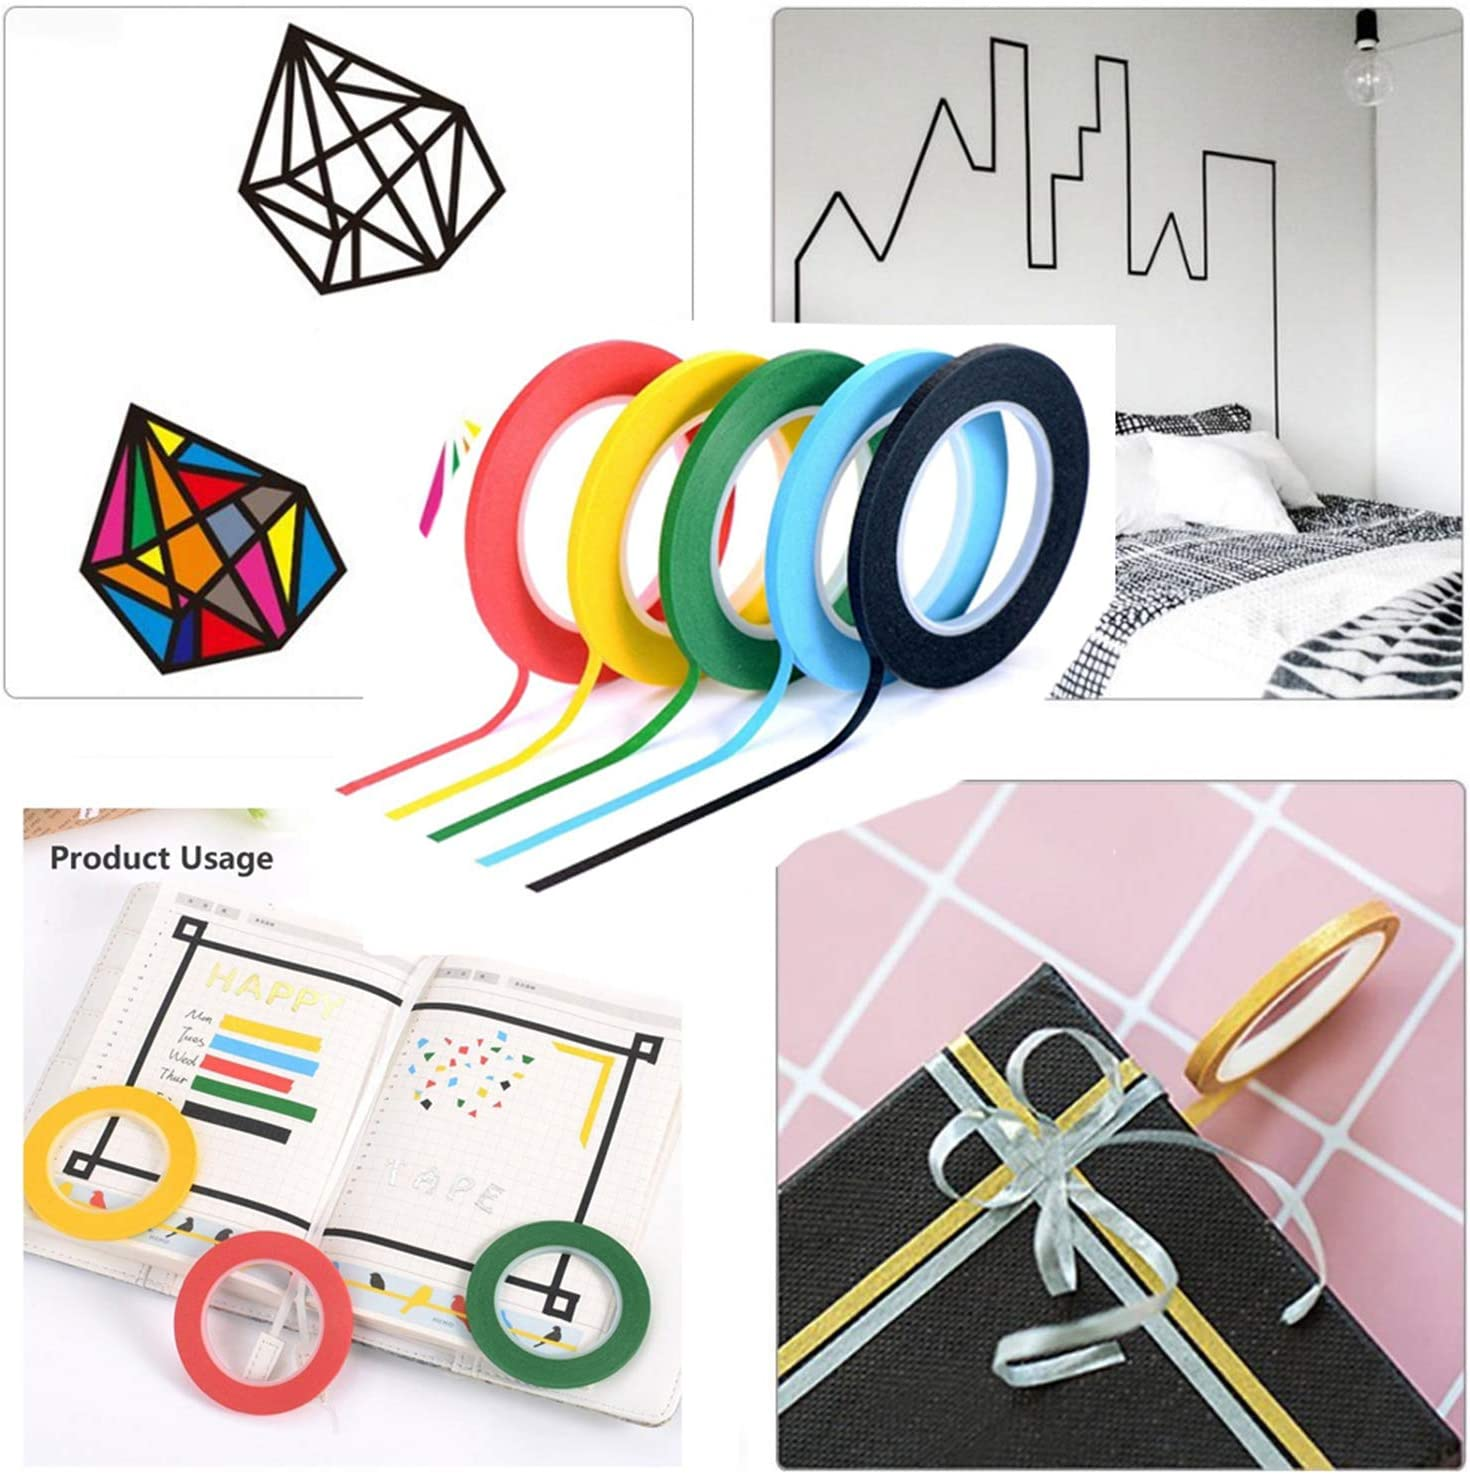 3mm Art Marking Tape Line Gridding Graphic Tape 18 Rolls Whiteboard Graphic Chart Tape